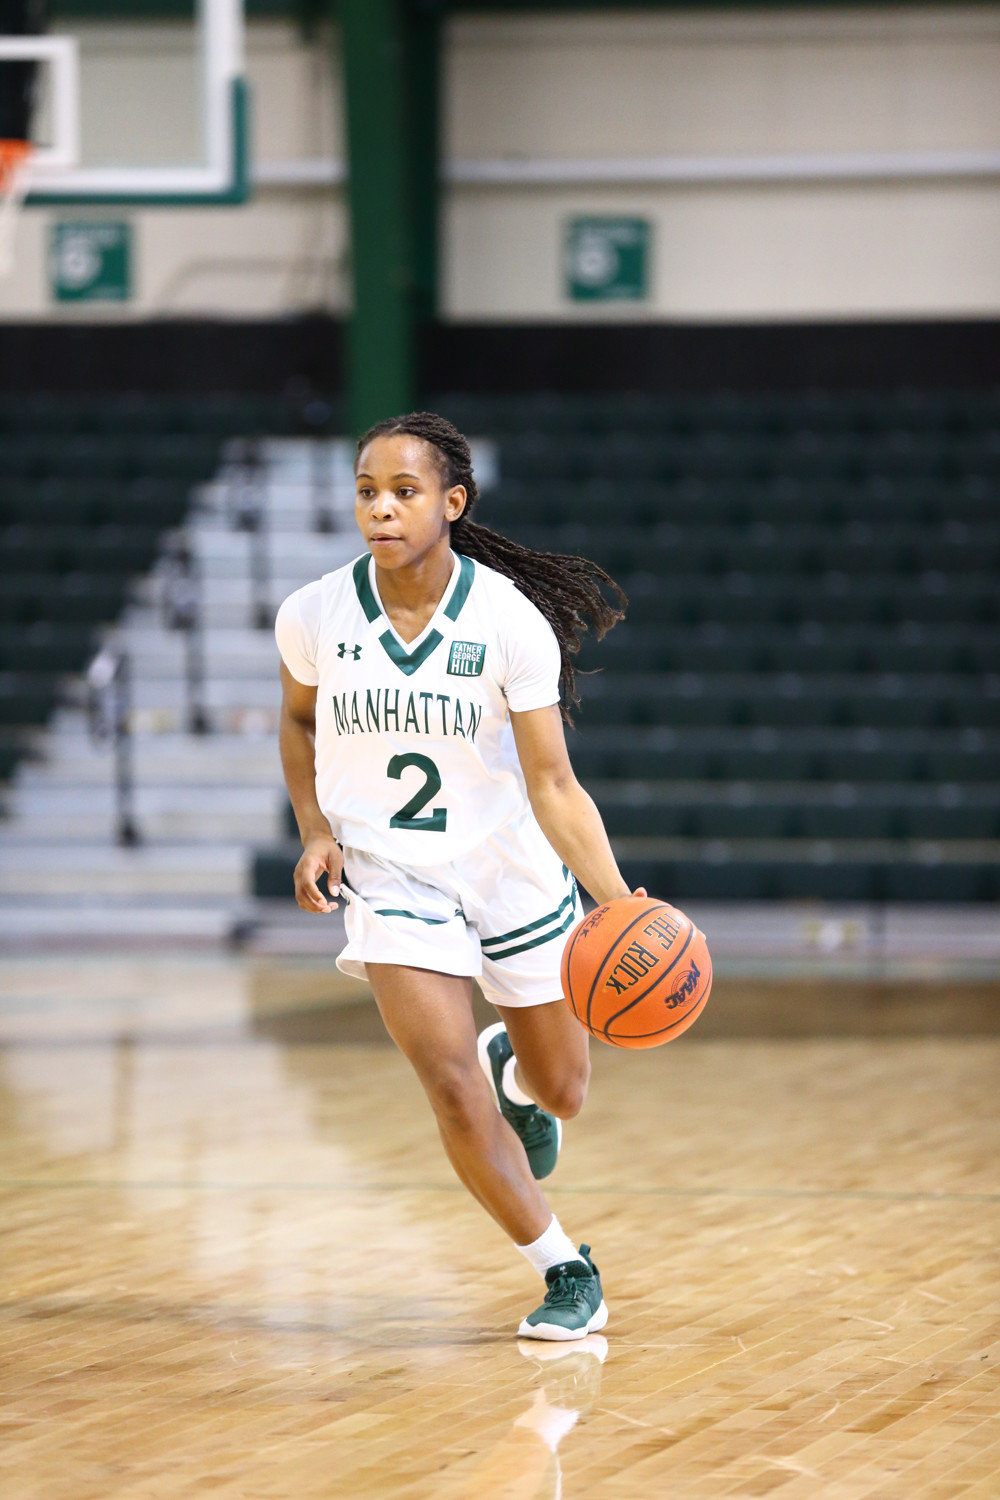 A strong season from Manhattan sophomore guard Gabby Cajou led to her being awarded the Metro Atlantic Athletic Conference Sixth Man of the Year.